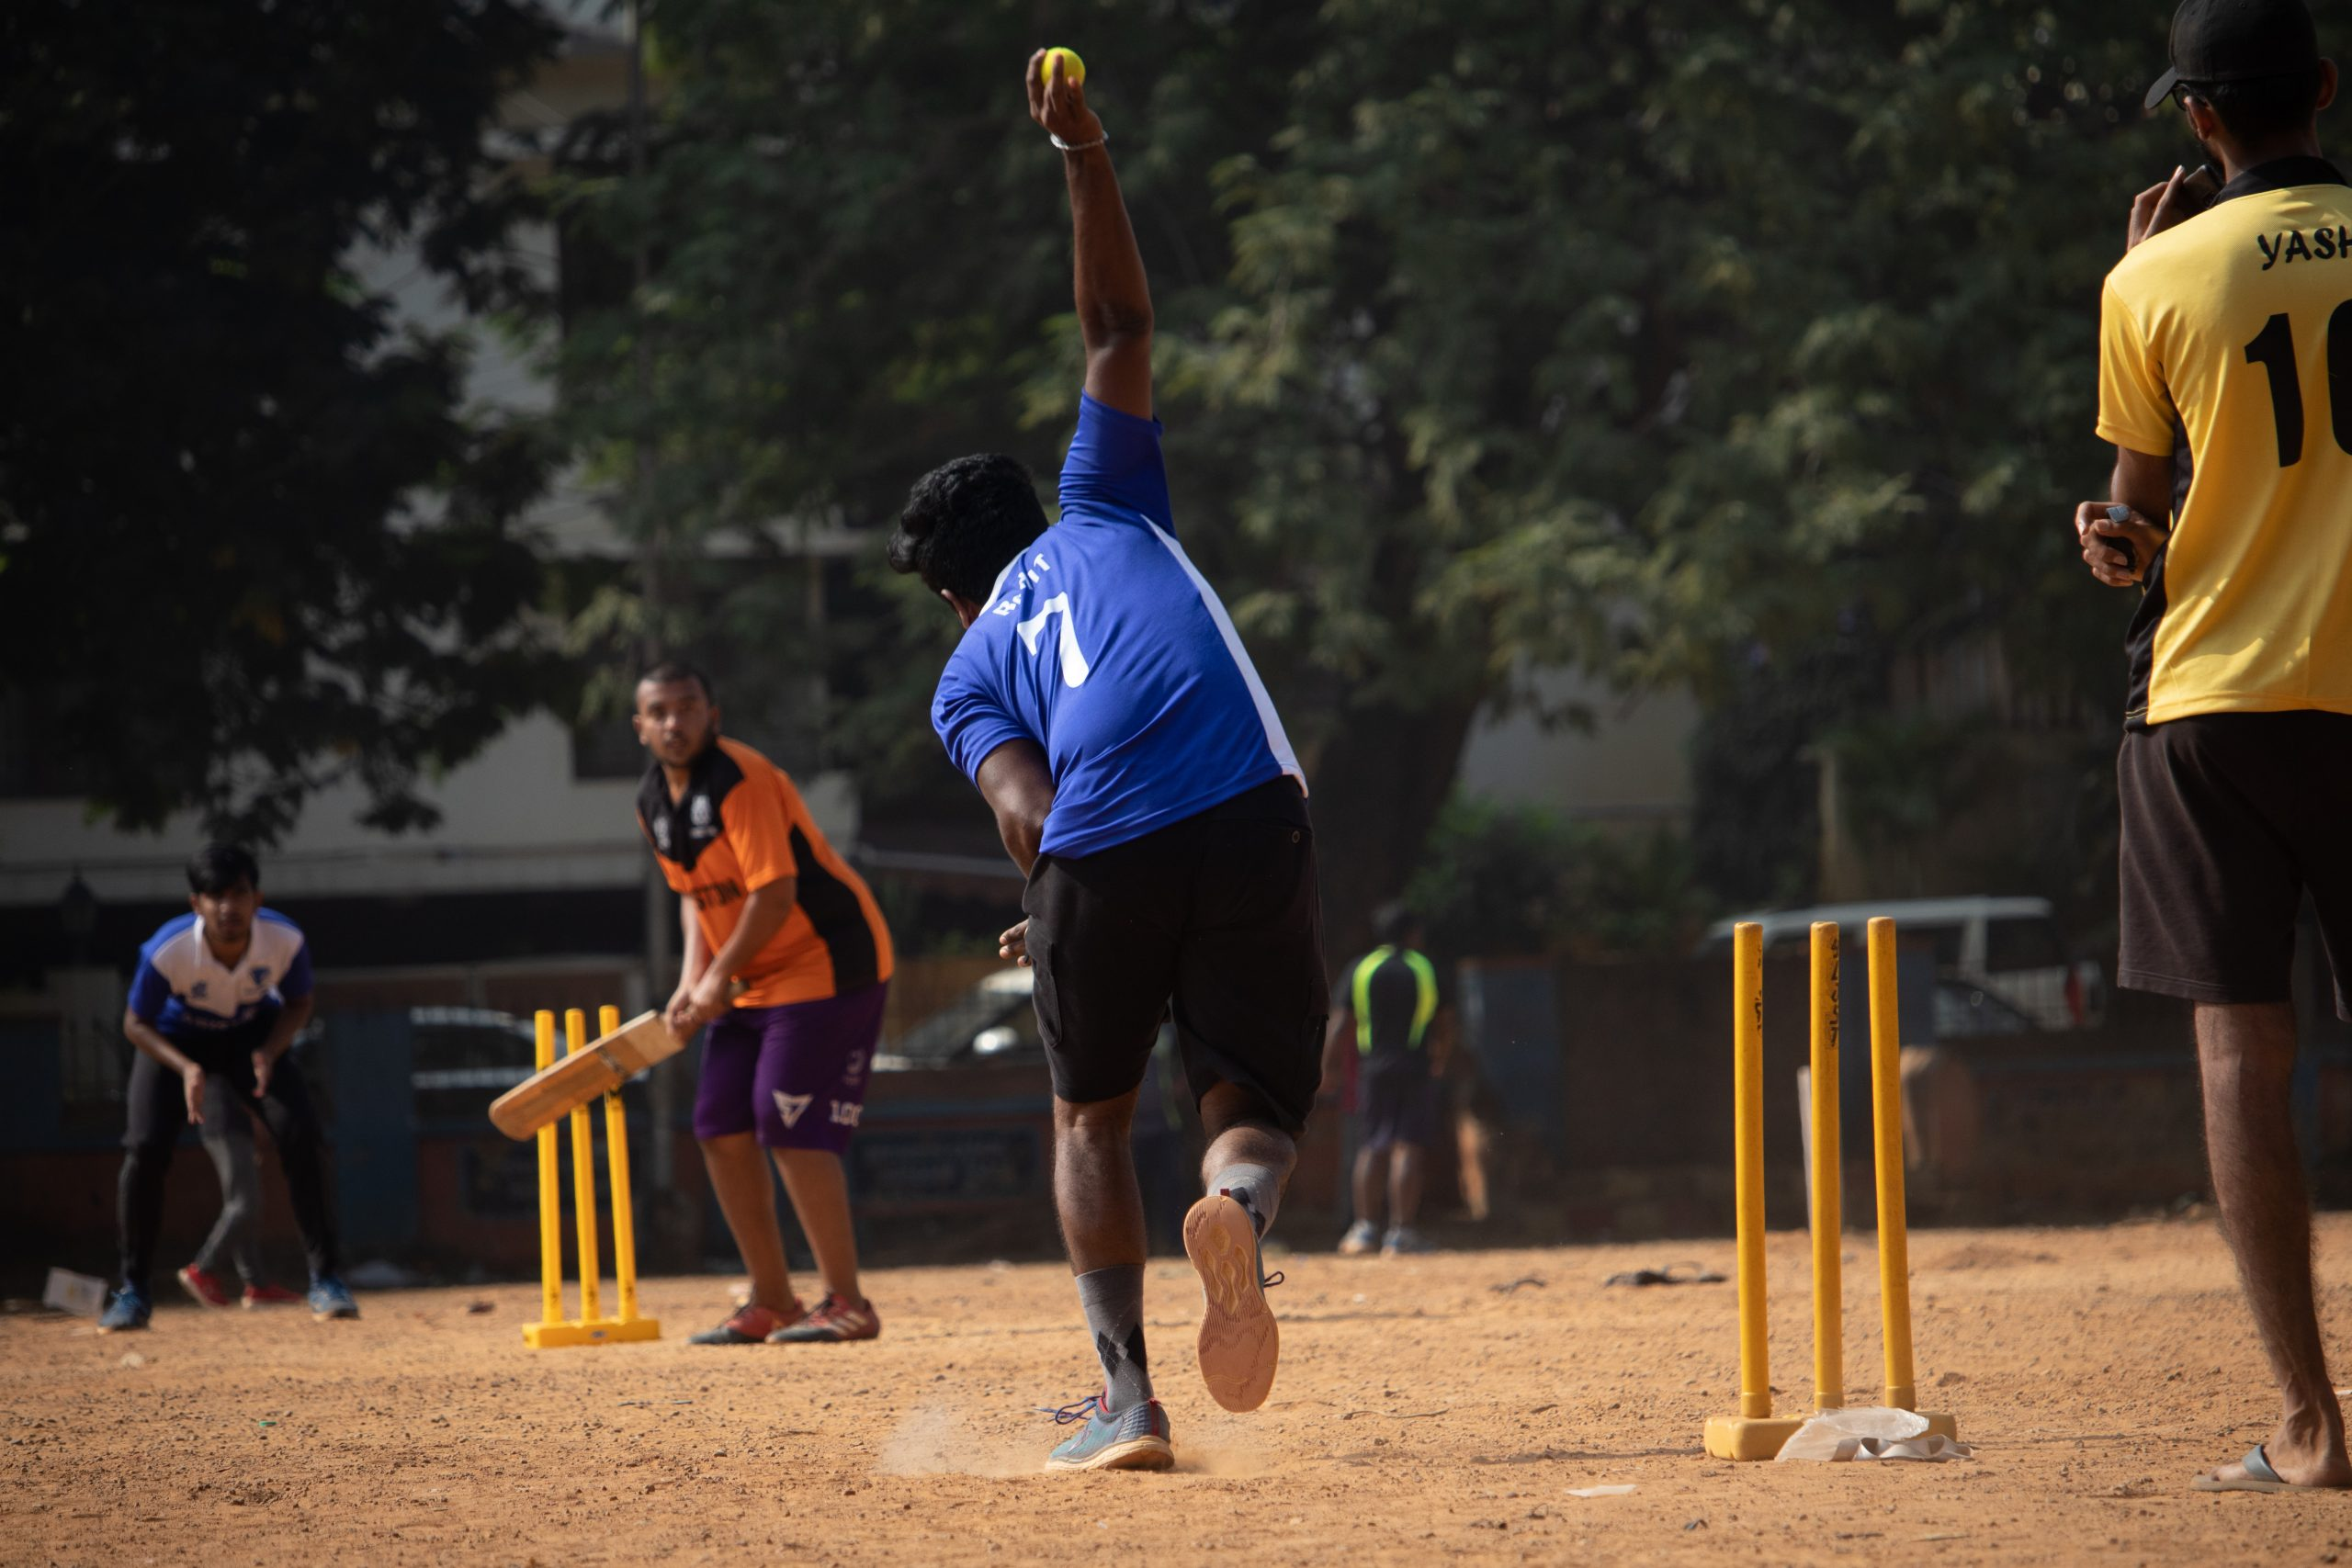 Cricket game in action